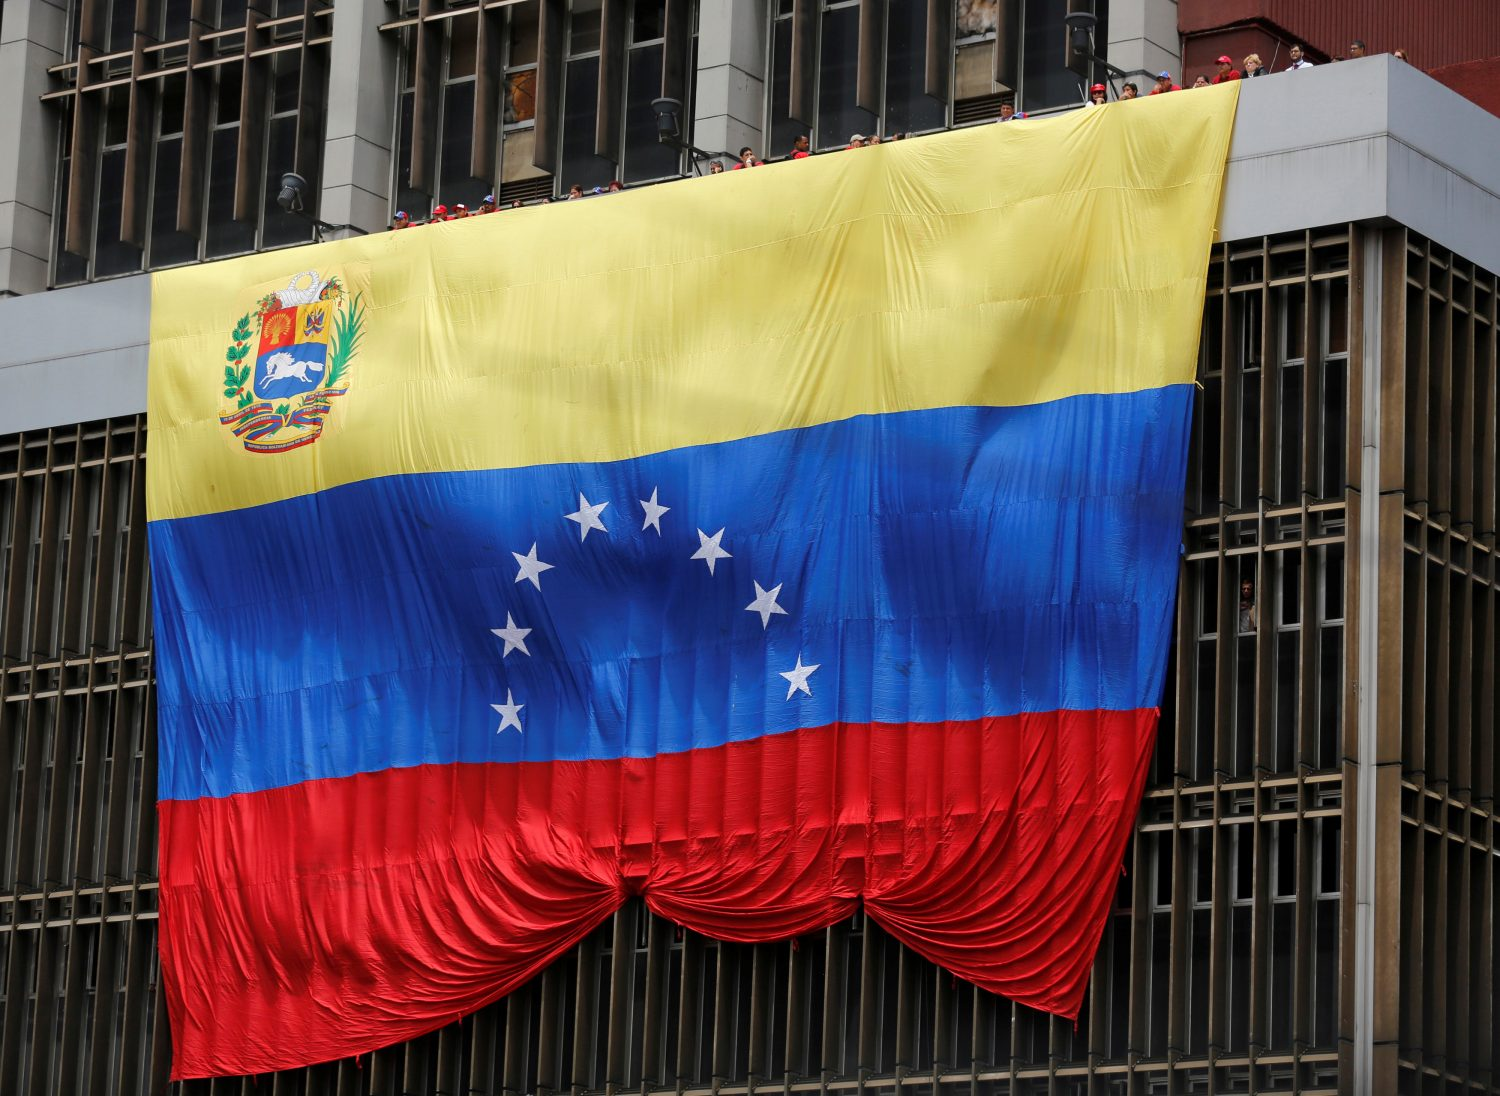 FILE PHOTO: A Venezuelan flag hangs from a building in Caracas March 11, 2013. REUTERS/Tomas Bravo/File Photo